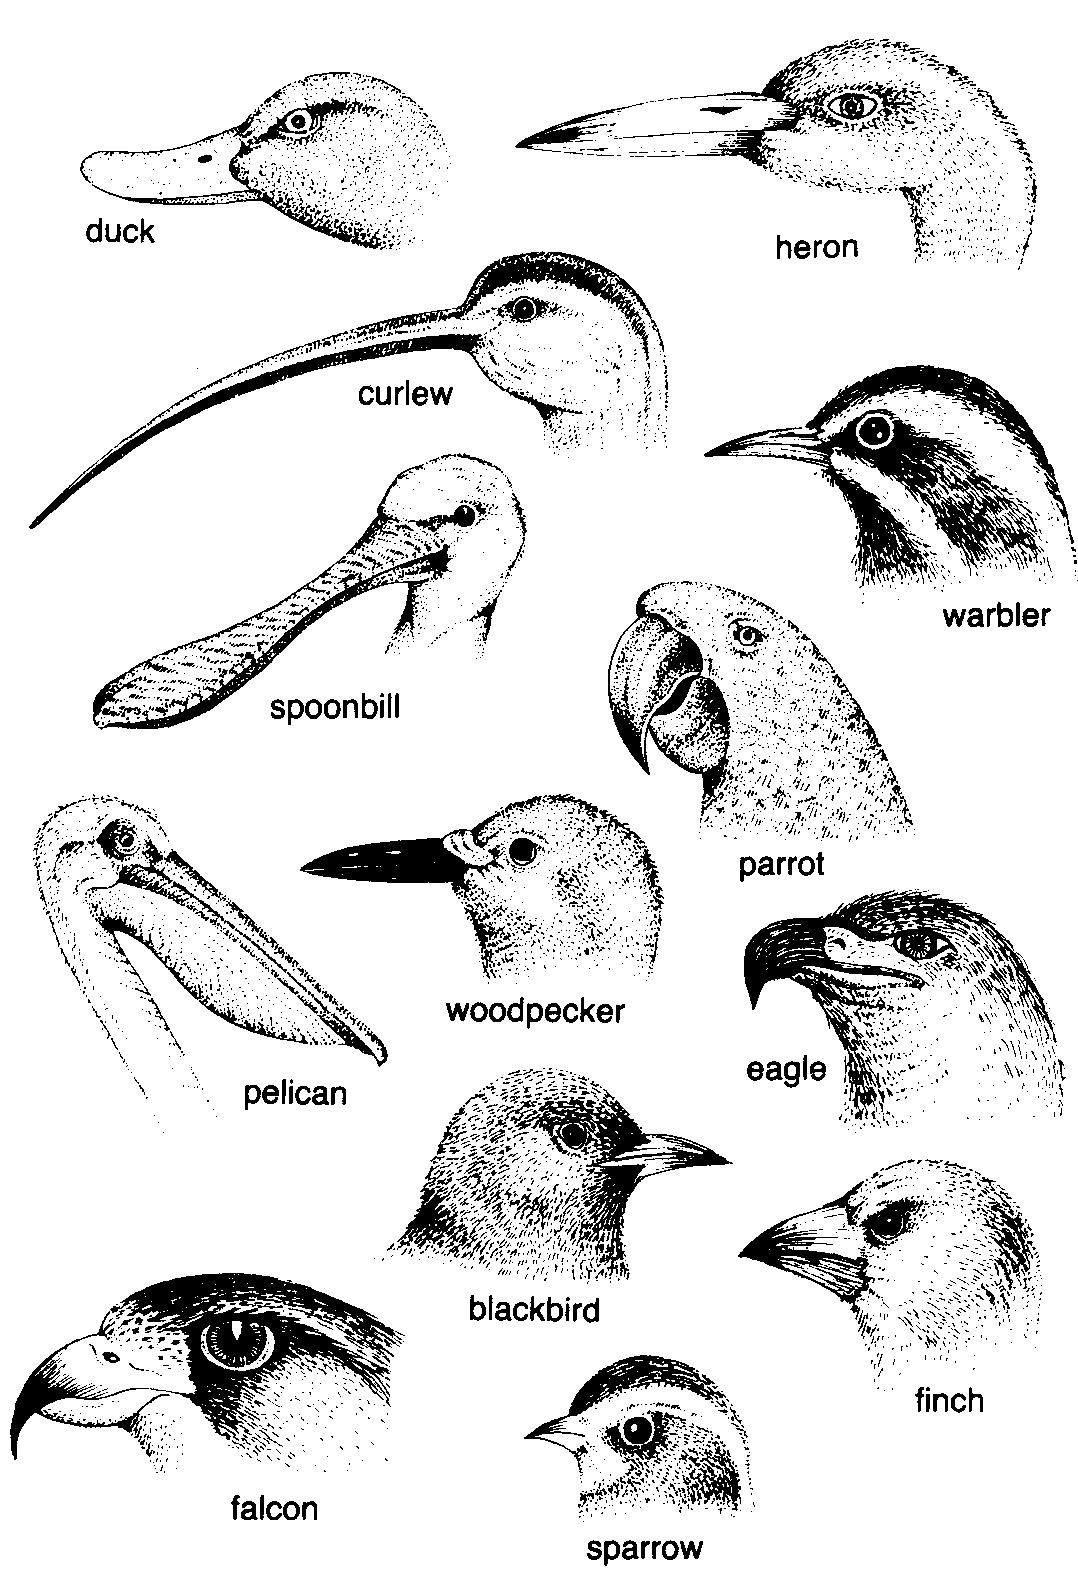 saladogt / Bird Adaptations